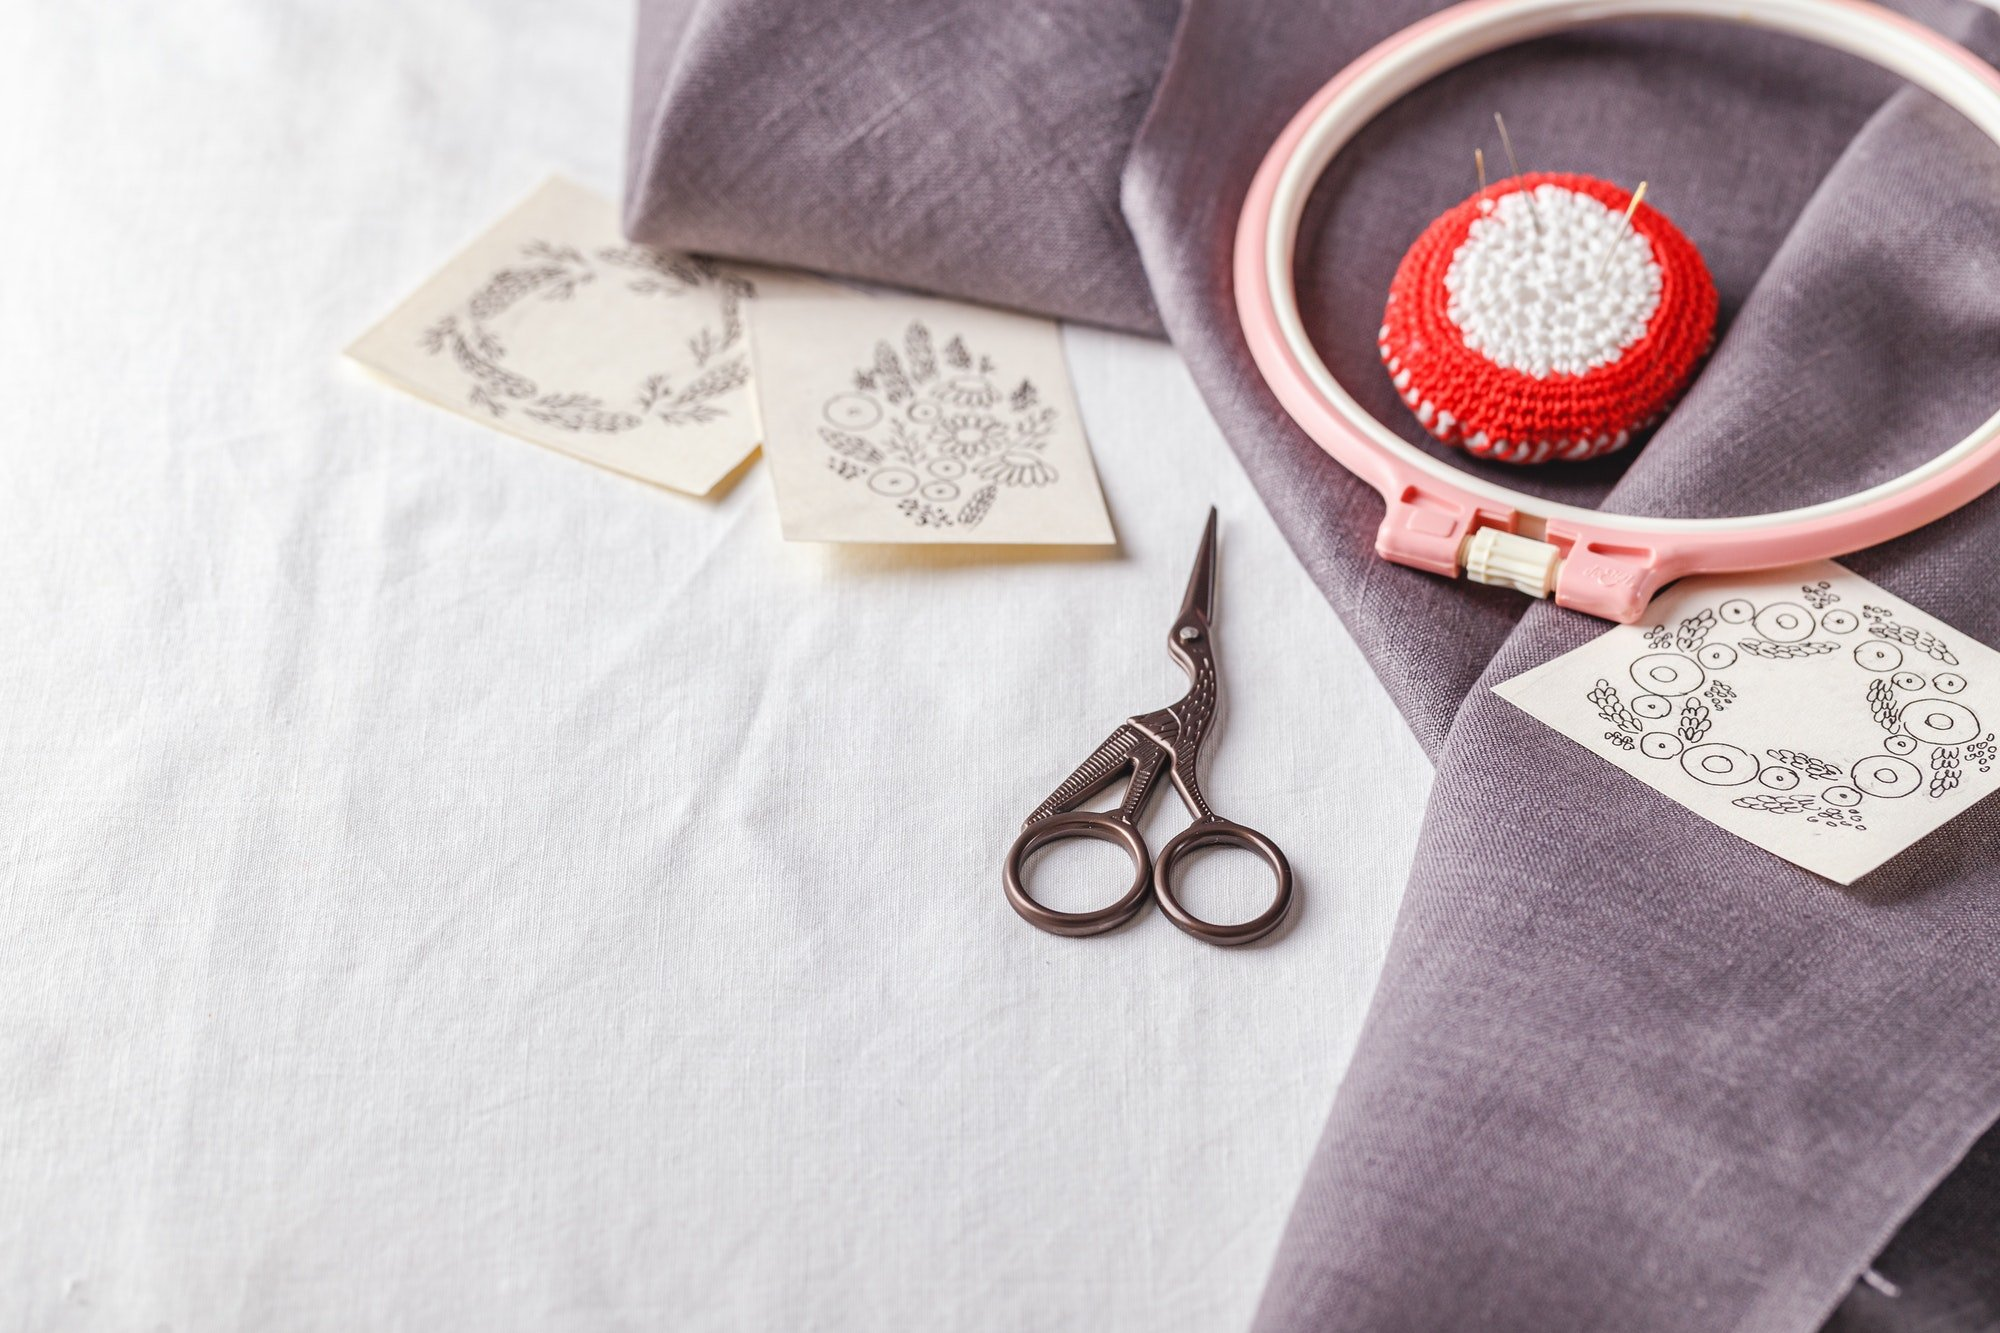 Embroidery set. Linen fabric, embroidery patterns, embroidery hoop and needls.